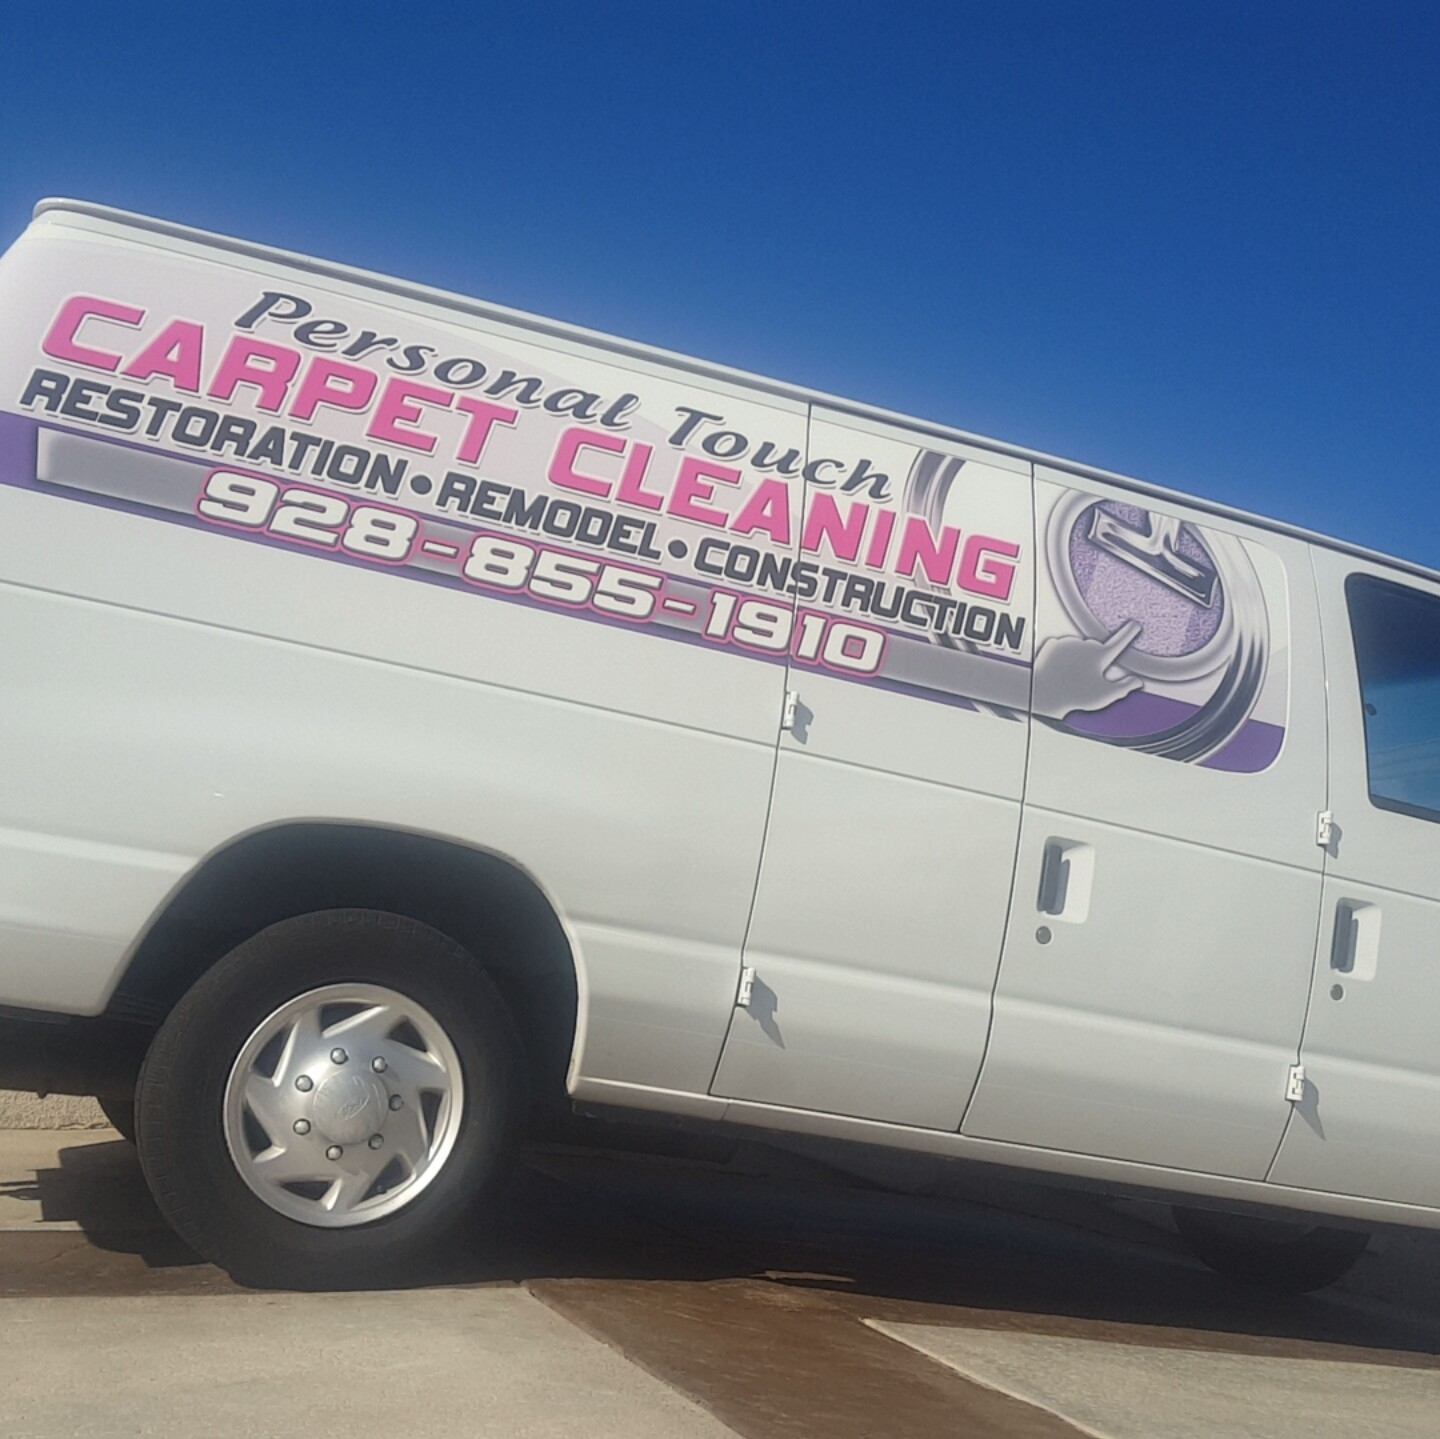 A Personal Touch Carpet Cleaning logo